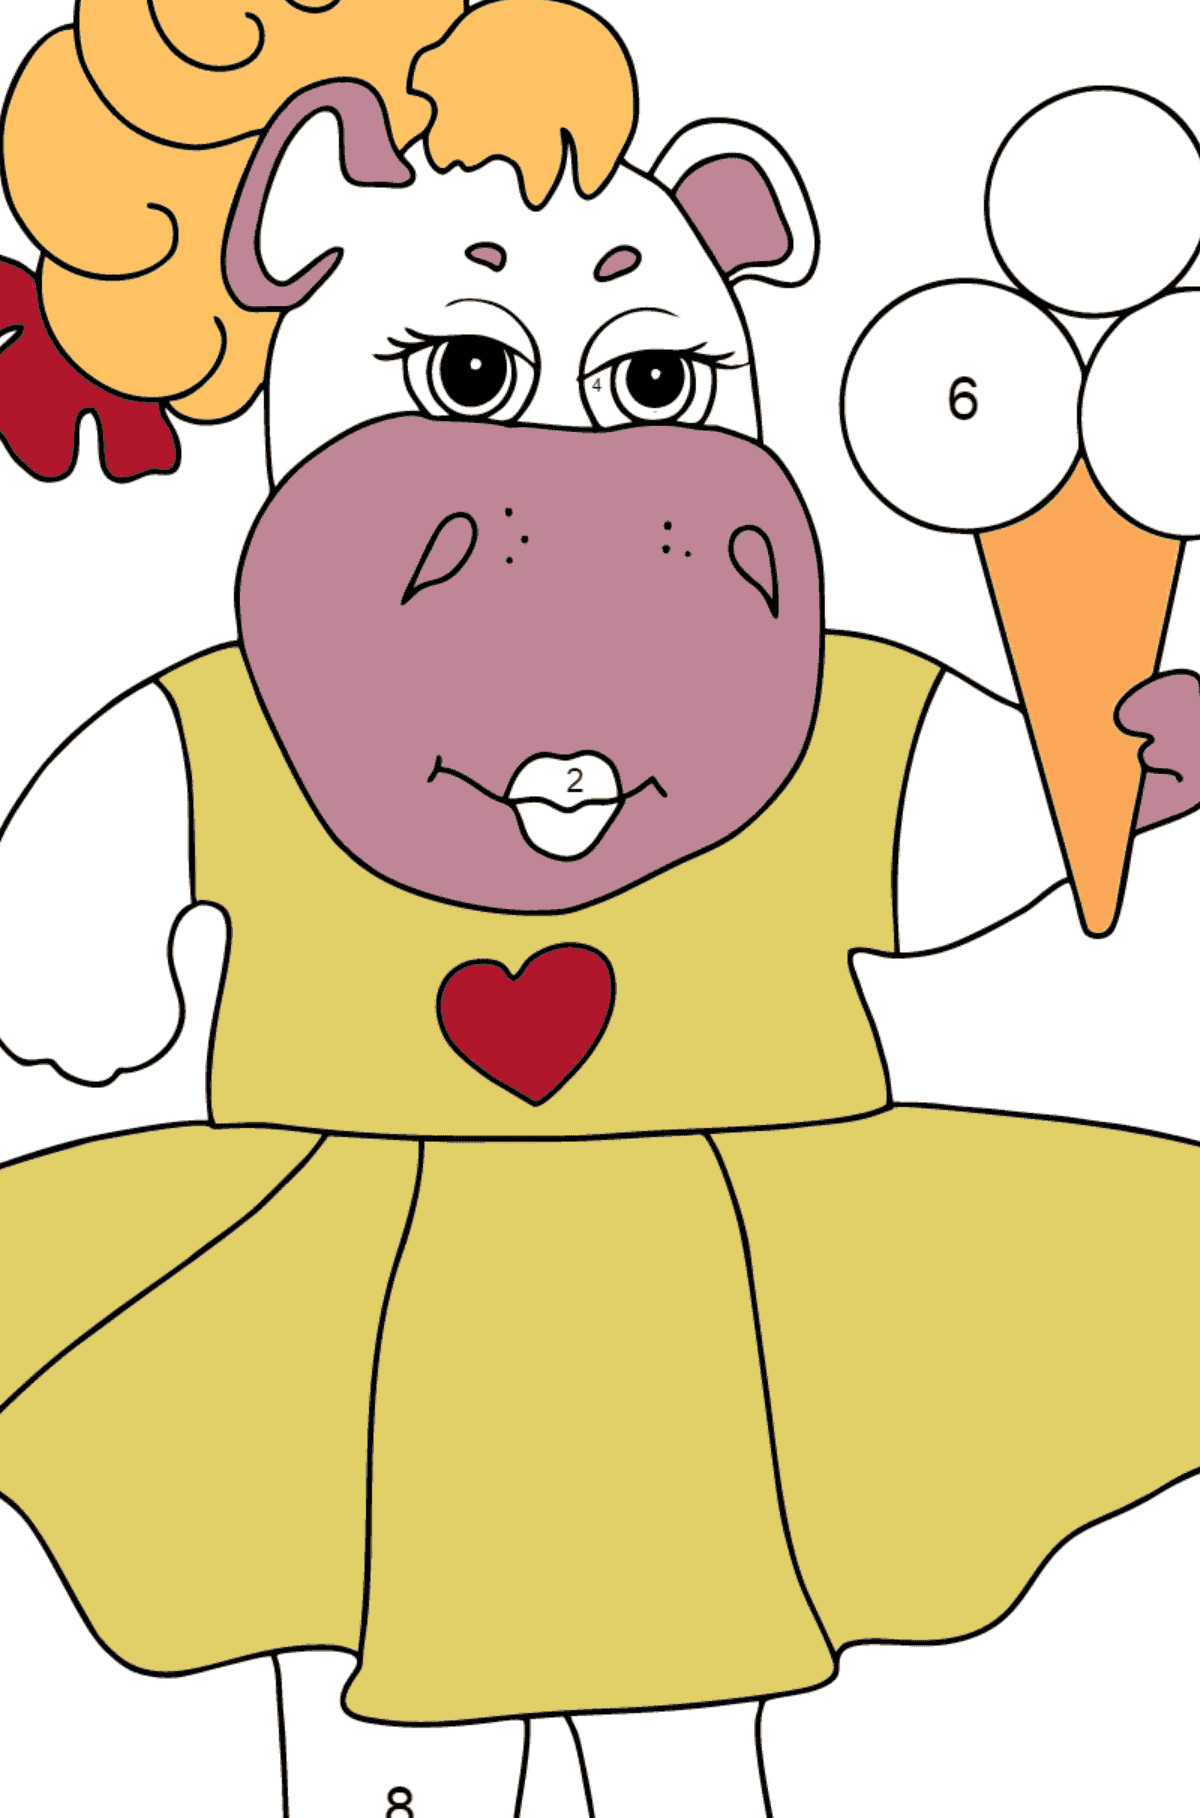 A Hippo in a Fancy Dress is Eating Ice Cream for Kids By Number